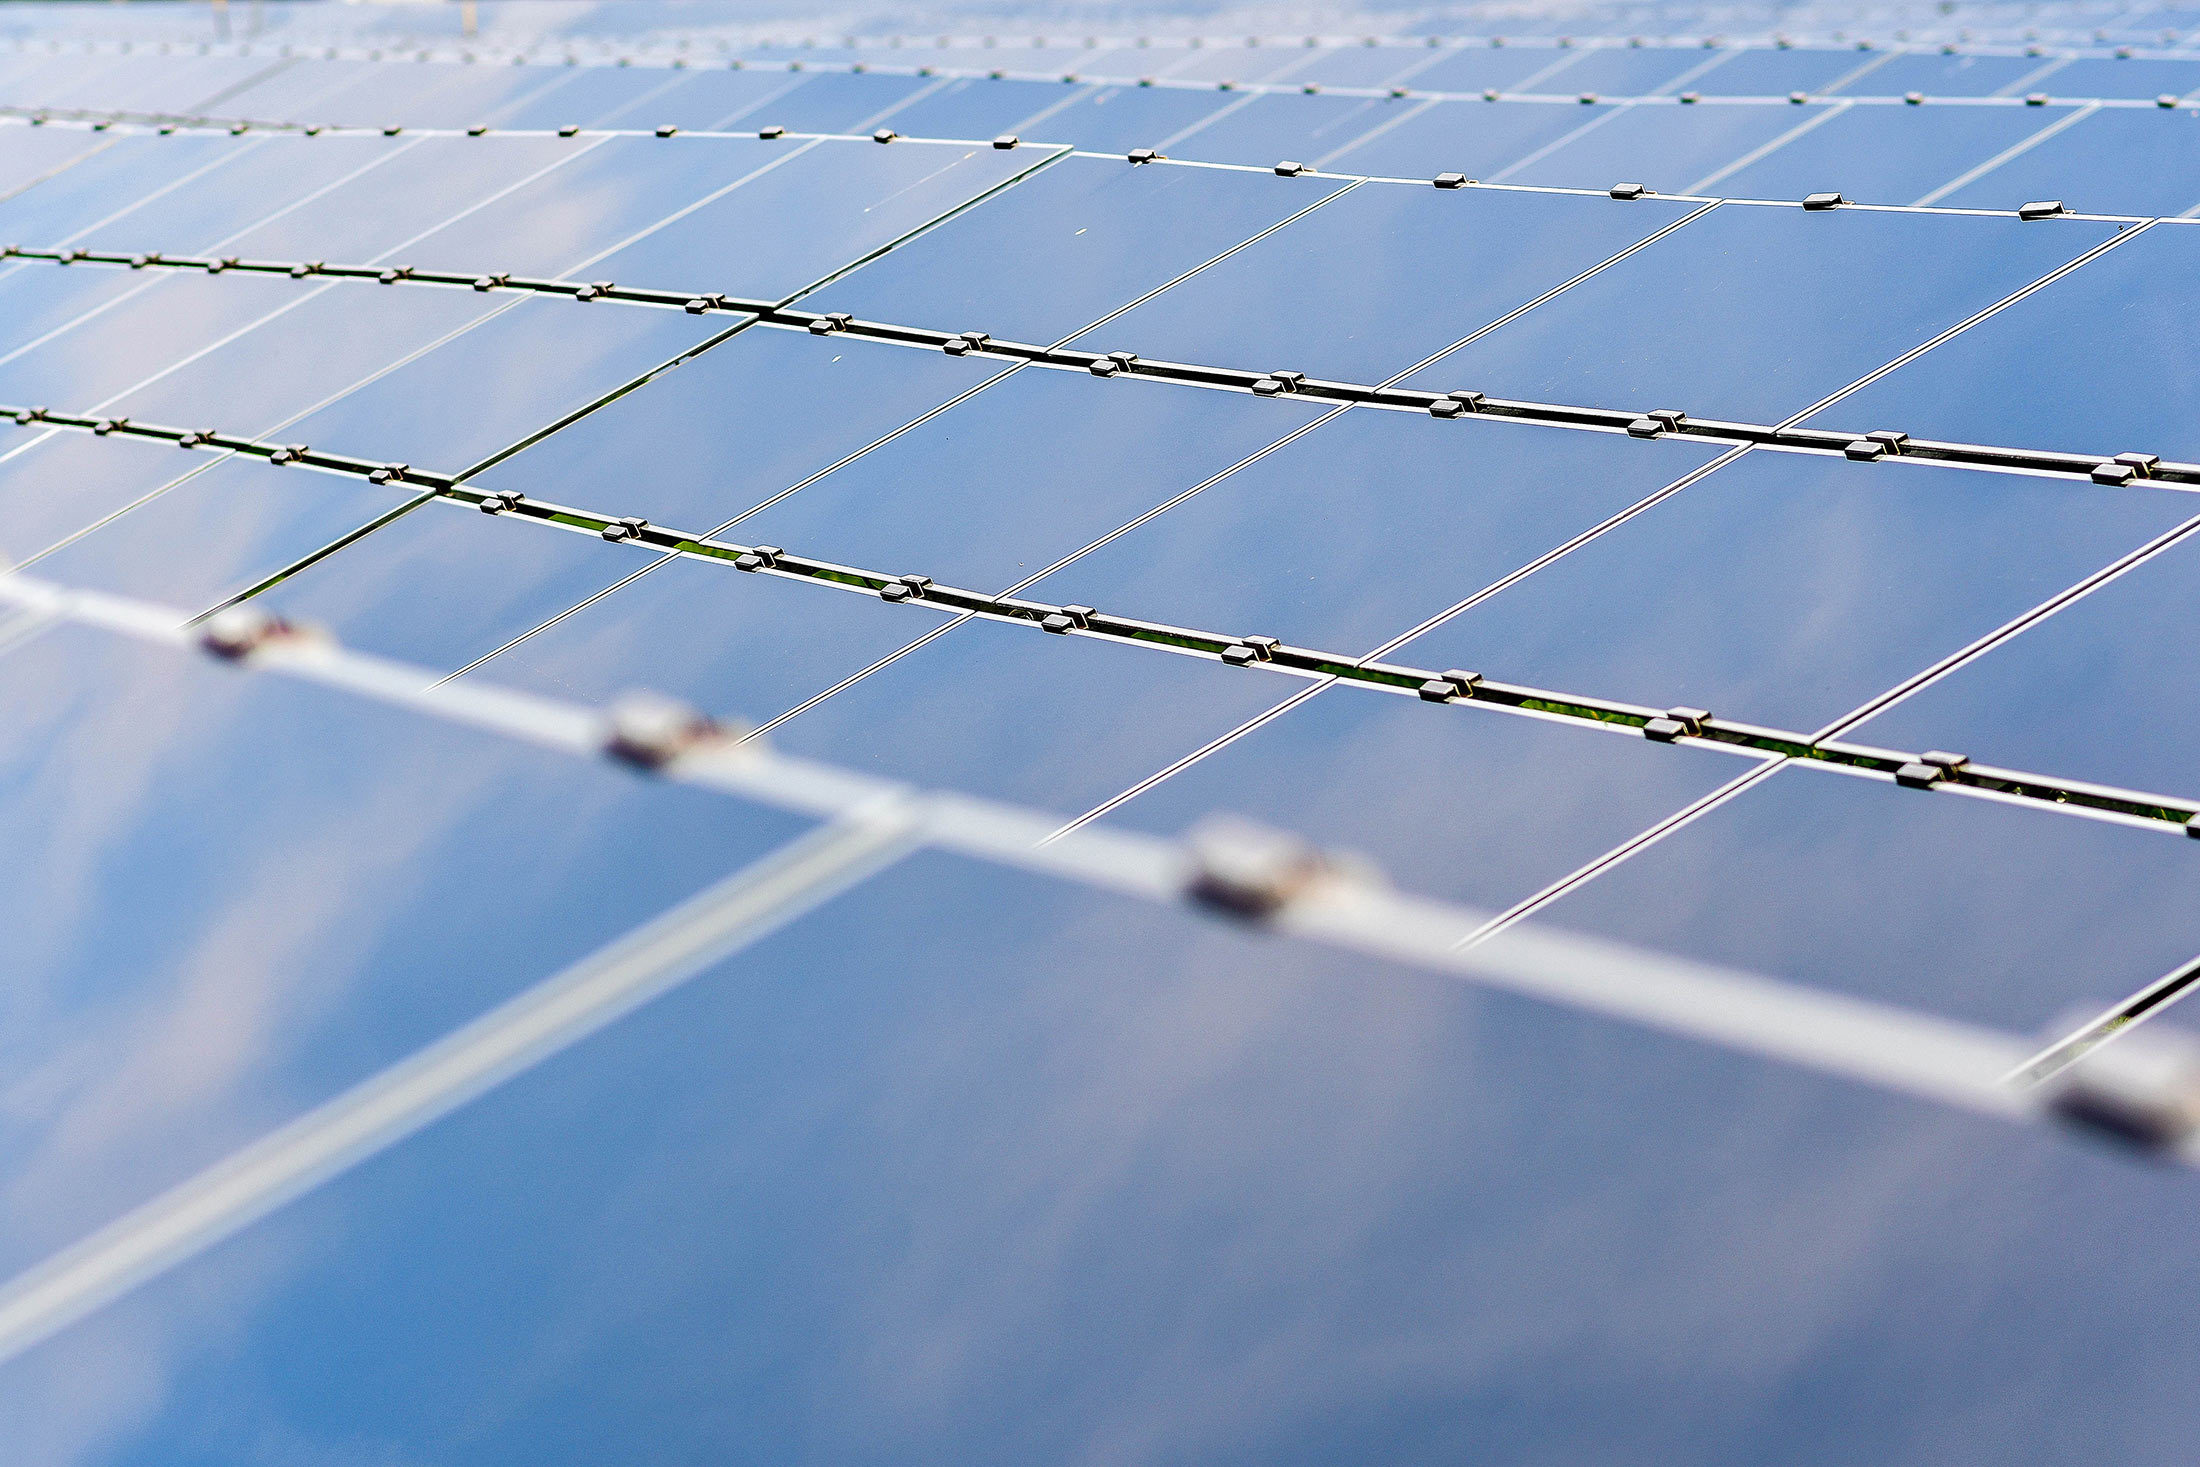 Solar panels stand at the Enbridge Inc. Sarnia Solar Farm in Sarnia, Ontario, Canada, on Friday, July 21, 2017. The Sarnia Solar Farm, which became fully operational in the fall of 2010, was at the time one of the largest photovoltaic solar farms in the world. It was also Enbridge's first ever foray into solar energy, costing $400 million. Photographer: James MacDonald/Bloomberg